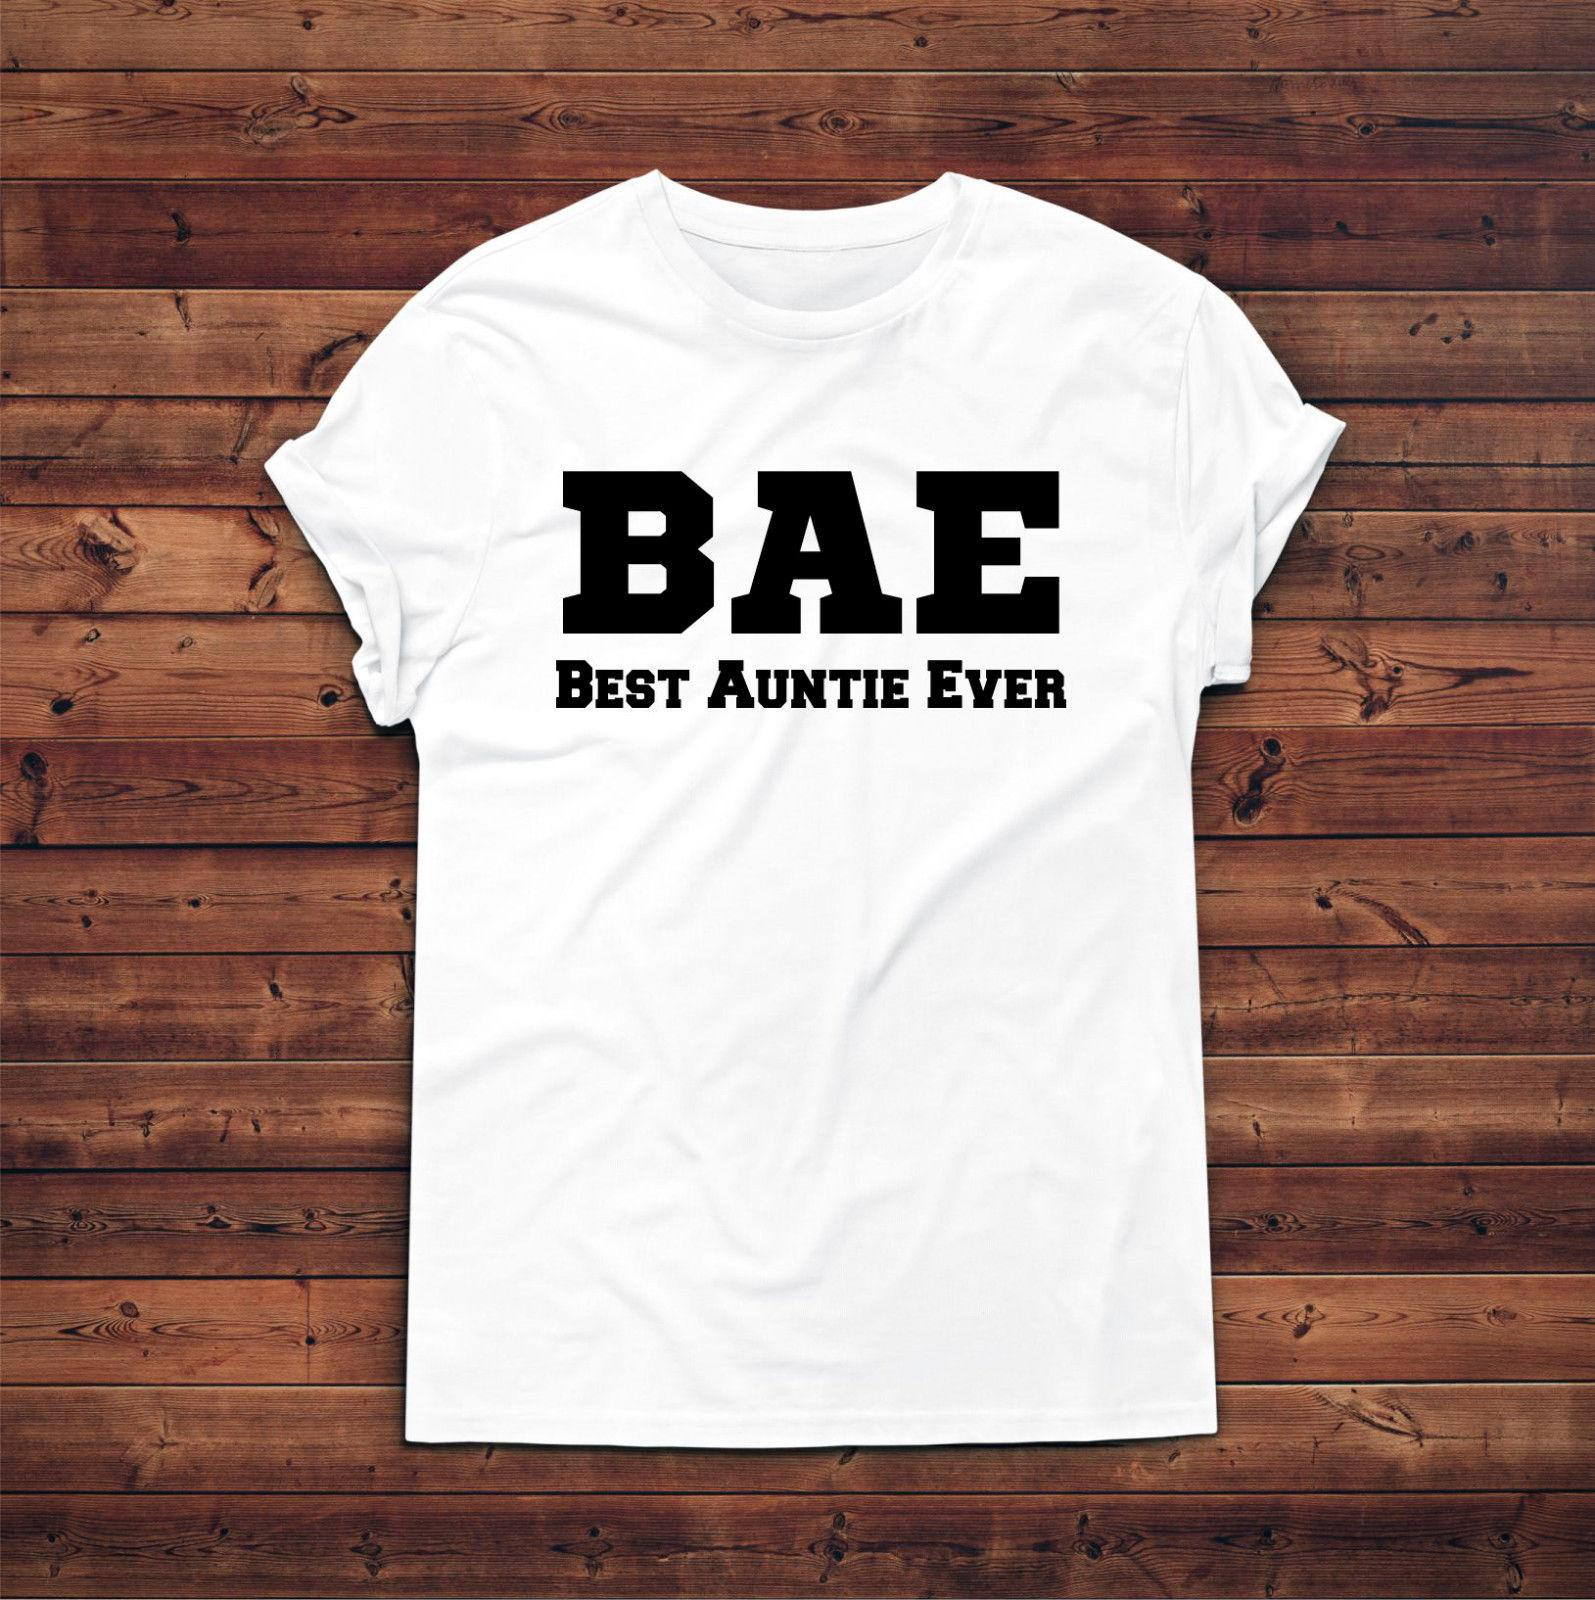 947cd4cc3 BAE Best Auntie Ever T Shirt,Slogan T Shirt,Gift For Aunt,Auntie  Gift,Fashion Casual Funny Unisex Tee Gift Funny Printed Shirts Cool Tee  Shirts Designs From ...